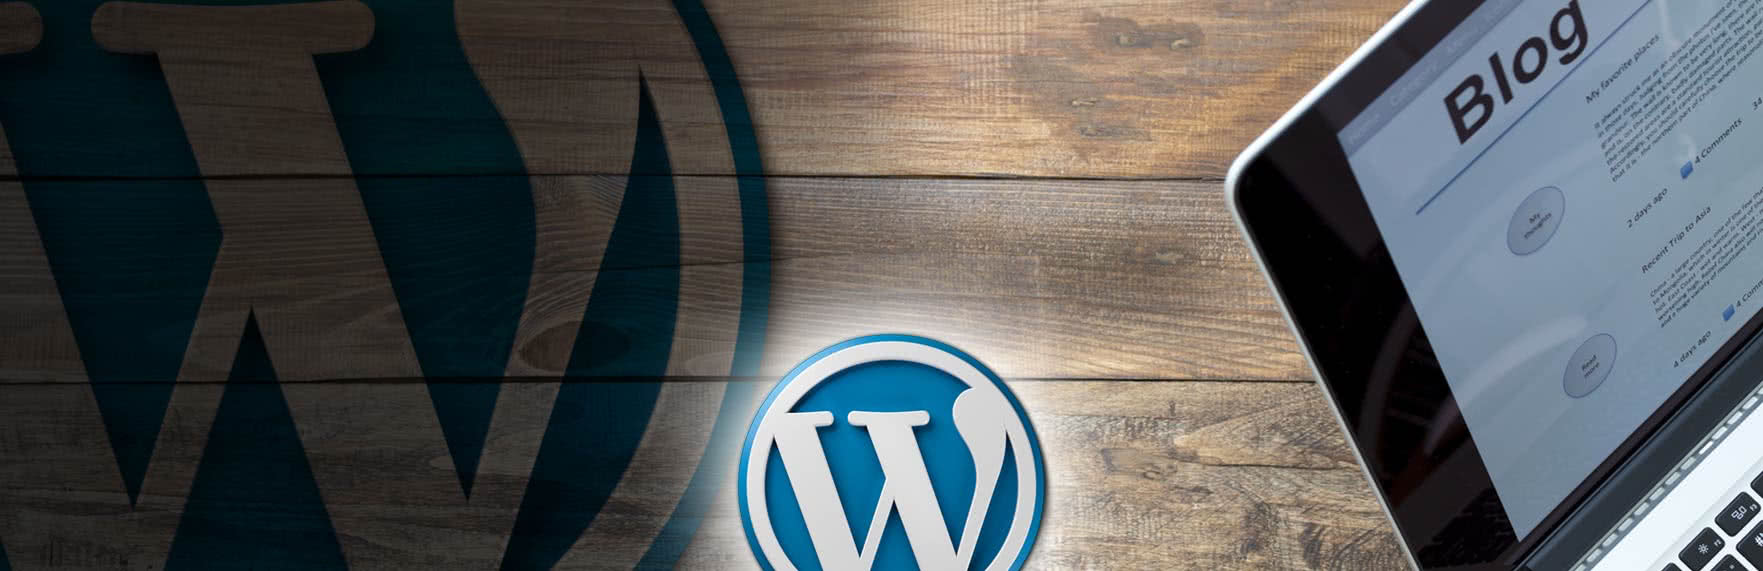 WordPress Tutorial - The Complete Guide For Beginners (2019)